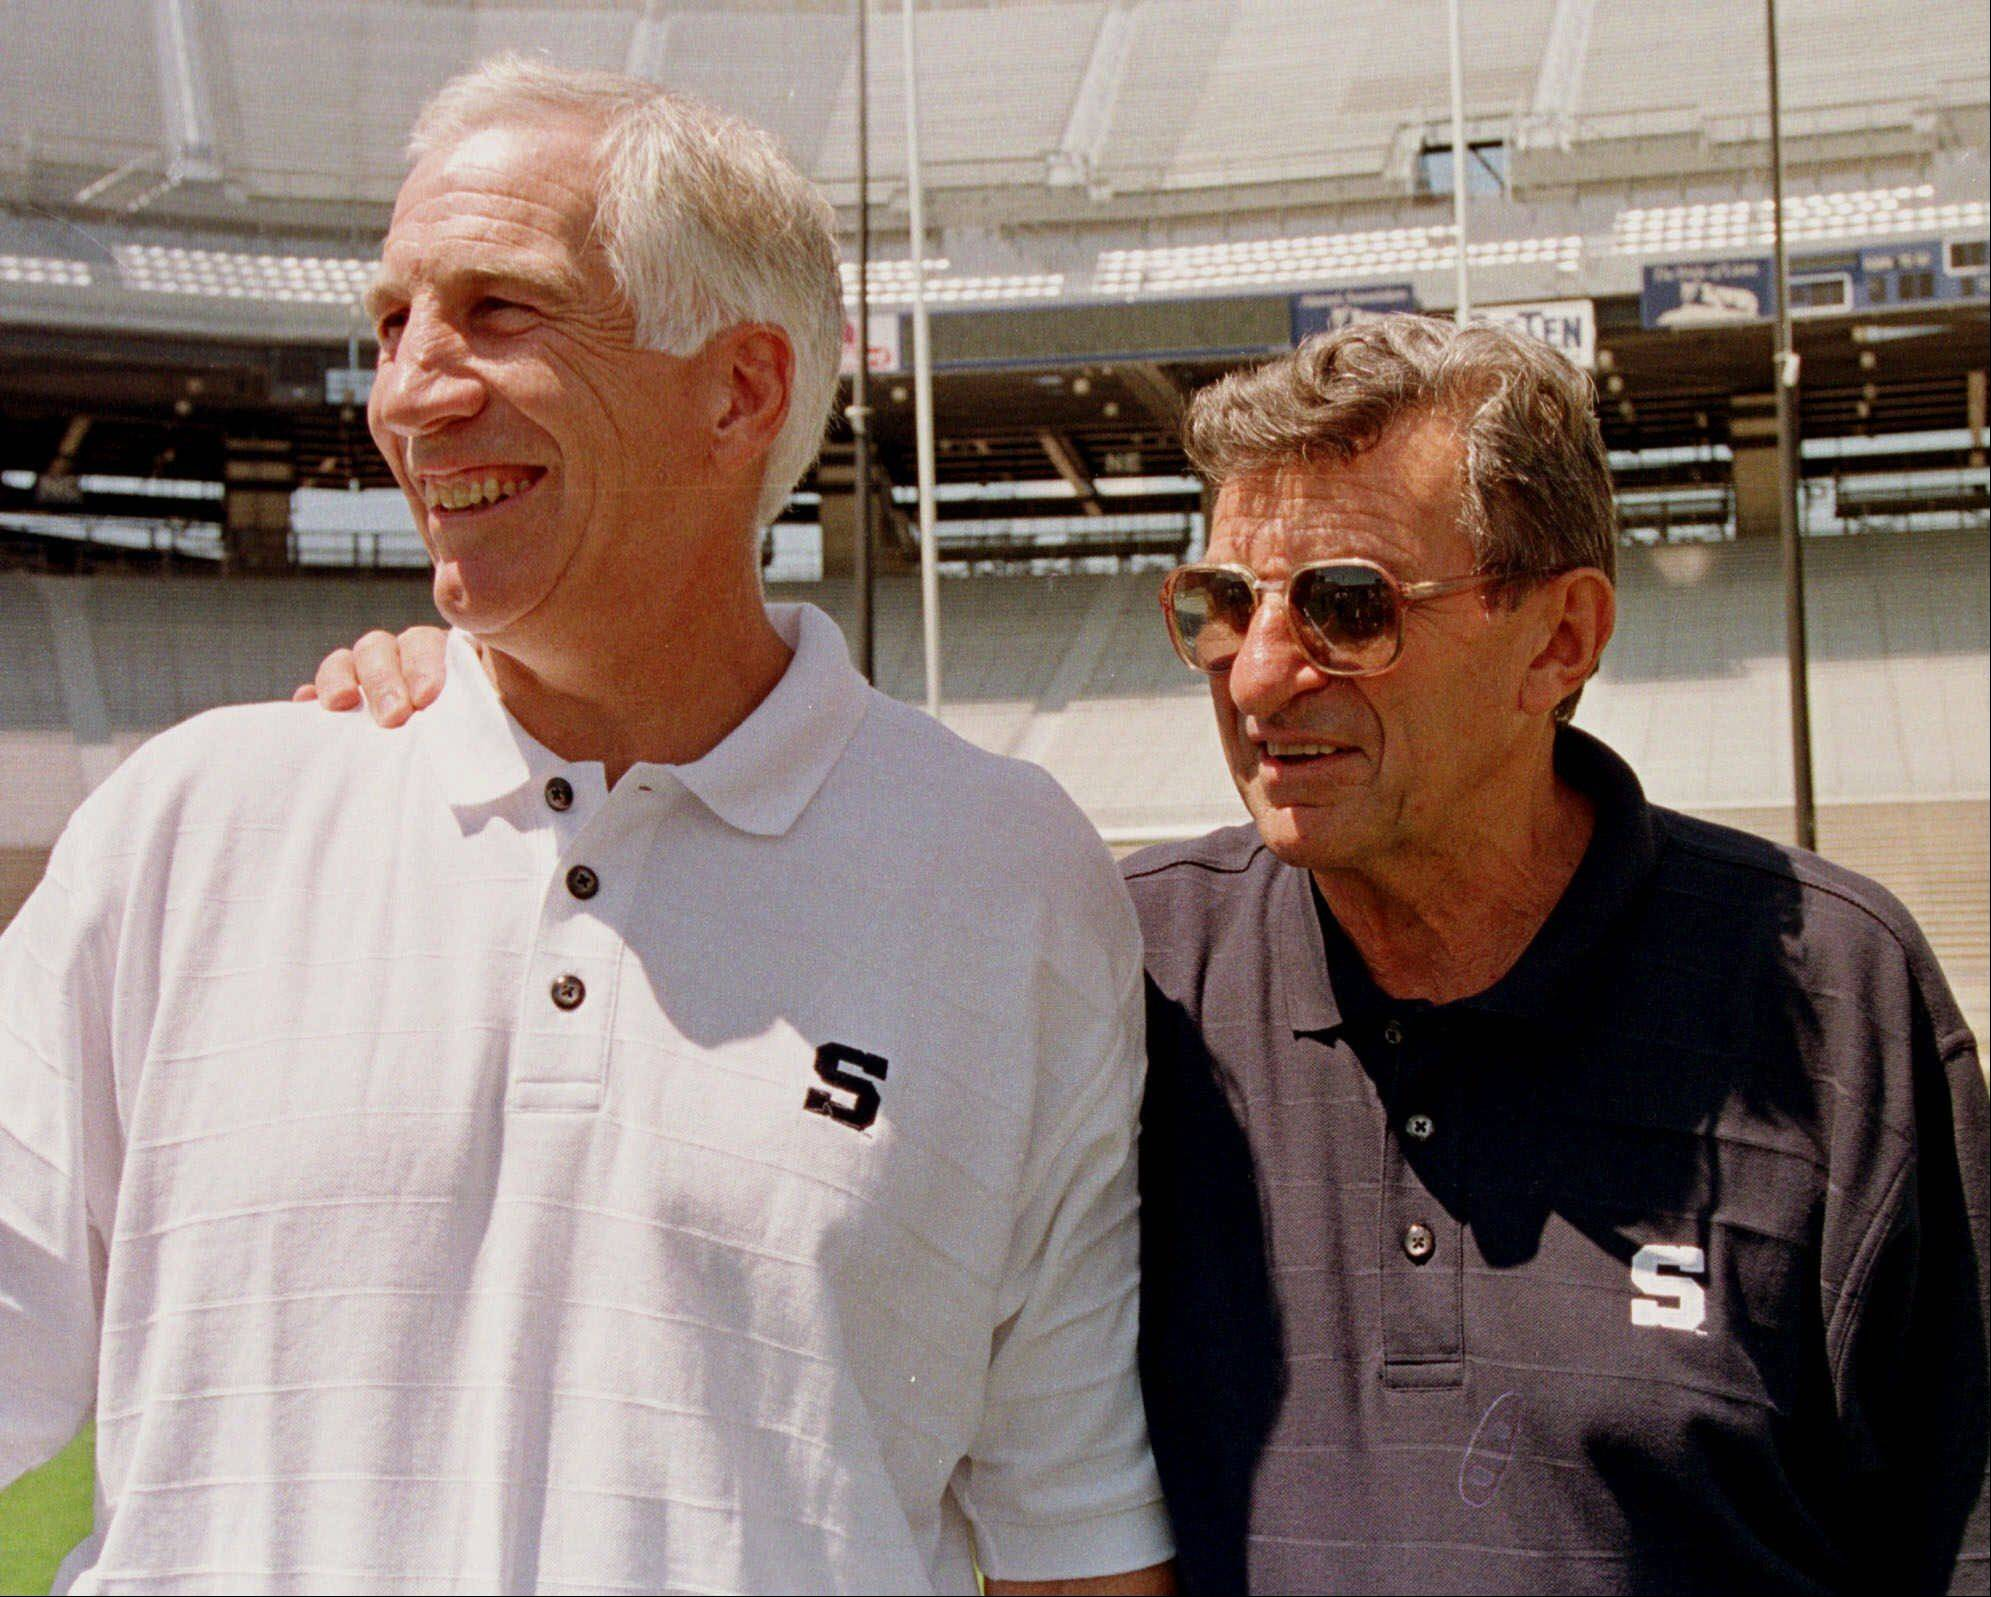 Penn State head football coach Joe Paterno, right, poses with his defensive coordinator Jerry Sandusky. A lawsuit by Joe Paterno's family and others against the NCAA is scheduled to go to court Wednesday, Oct. 30, 2013, one day after Penn State announced settlements with 26 young men over claims of abuse by Jerry Sandusky.